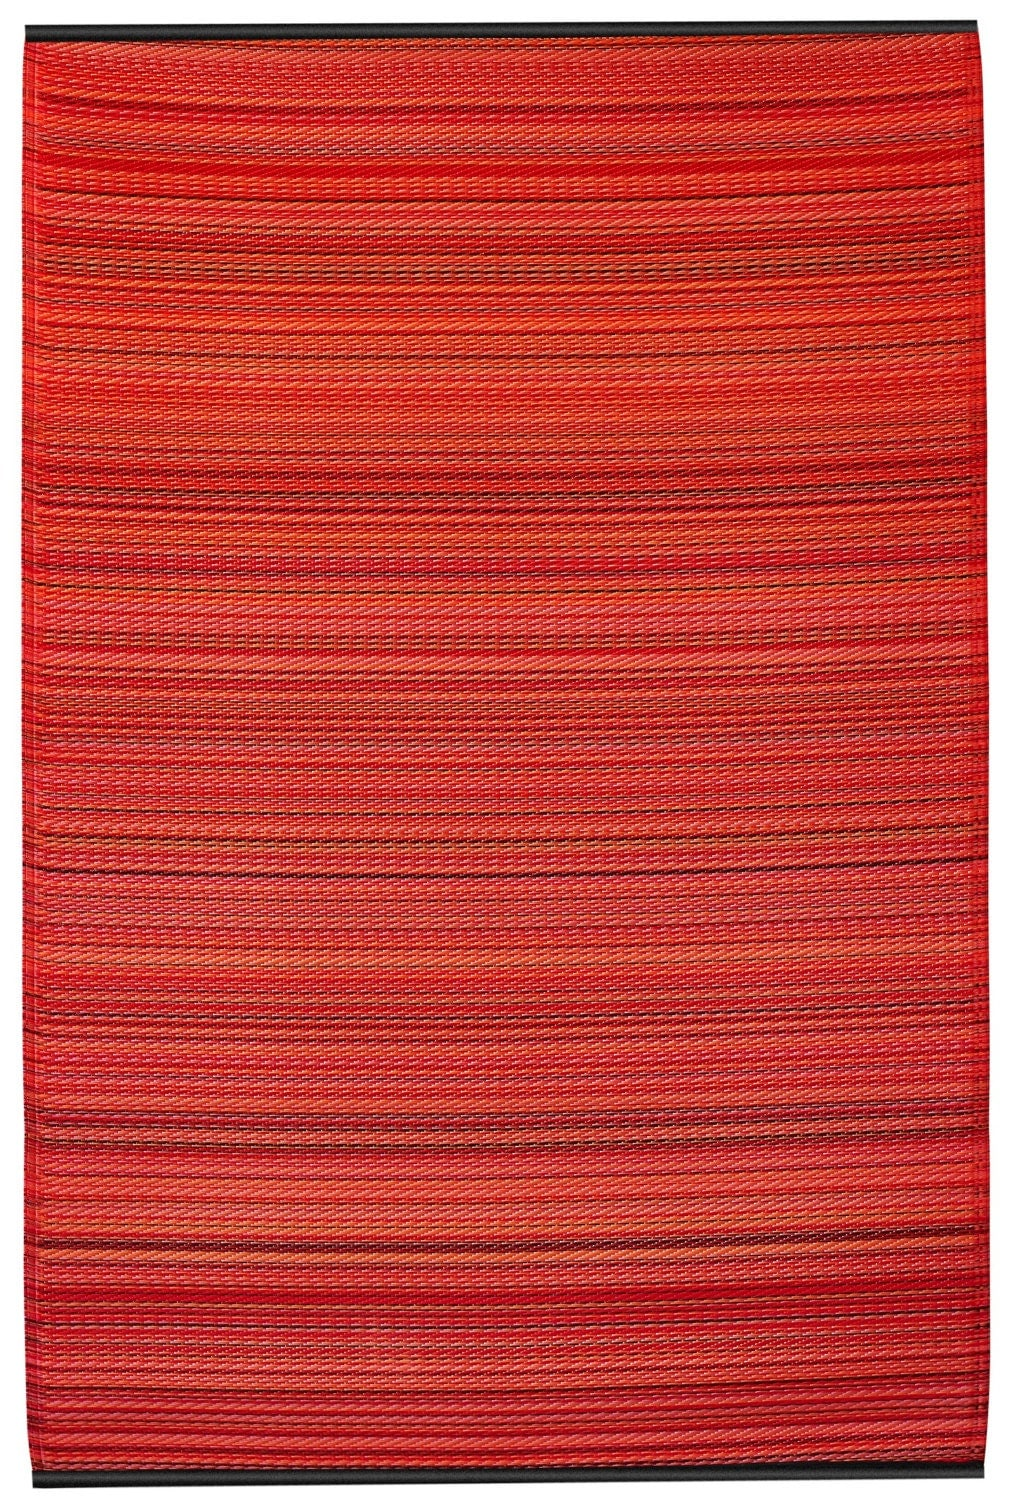 Fab Habitat IndoorOutdoor Rug Cancun Sunset by FabHabitat